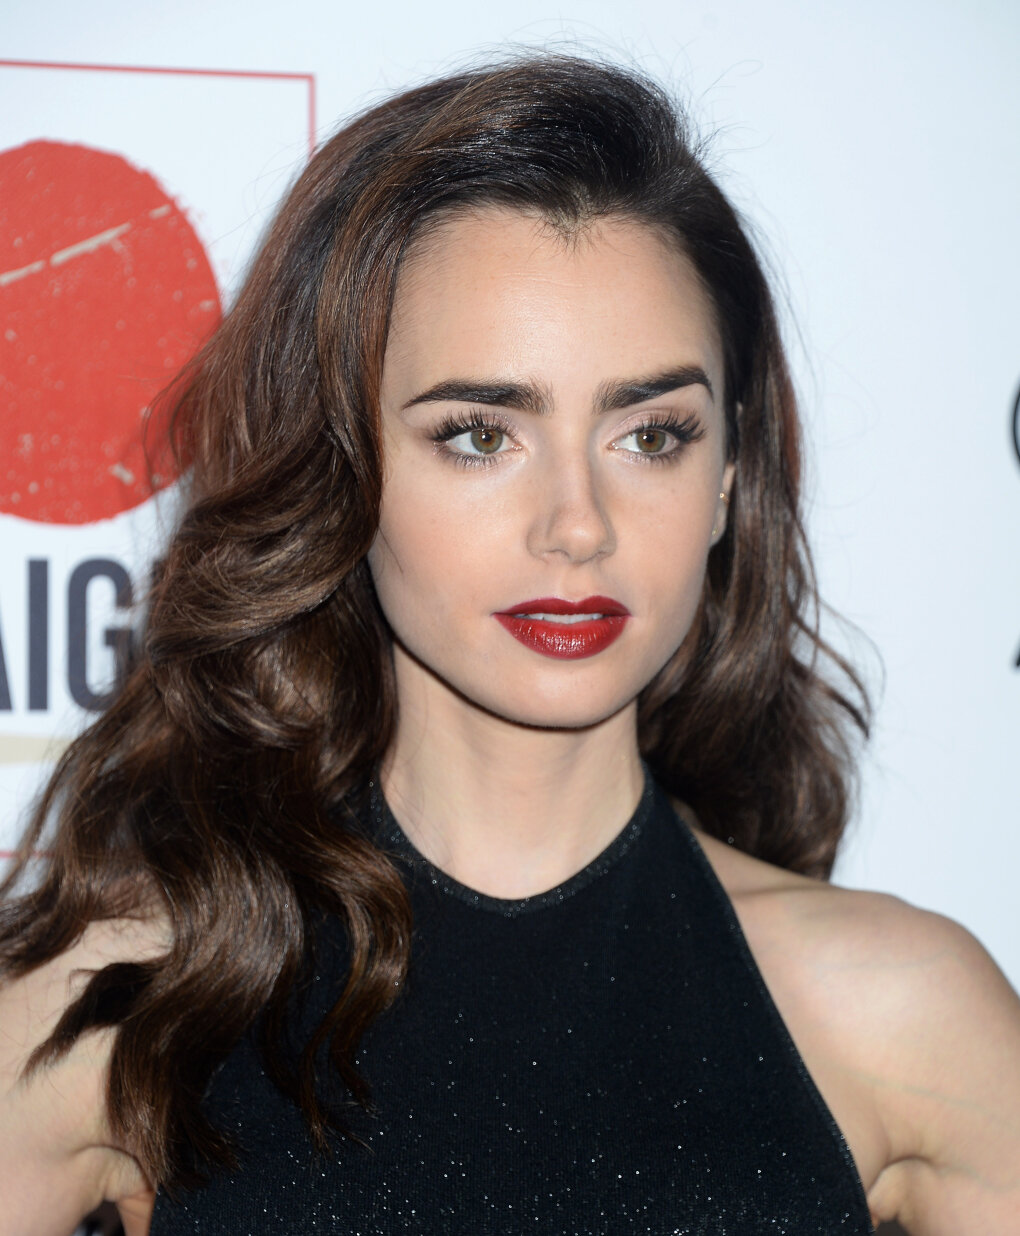 lily collins aic